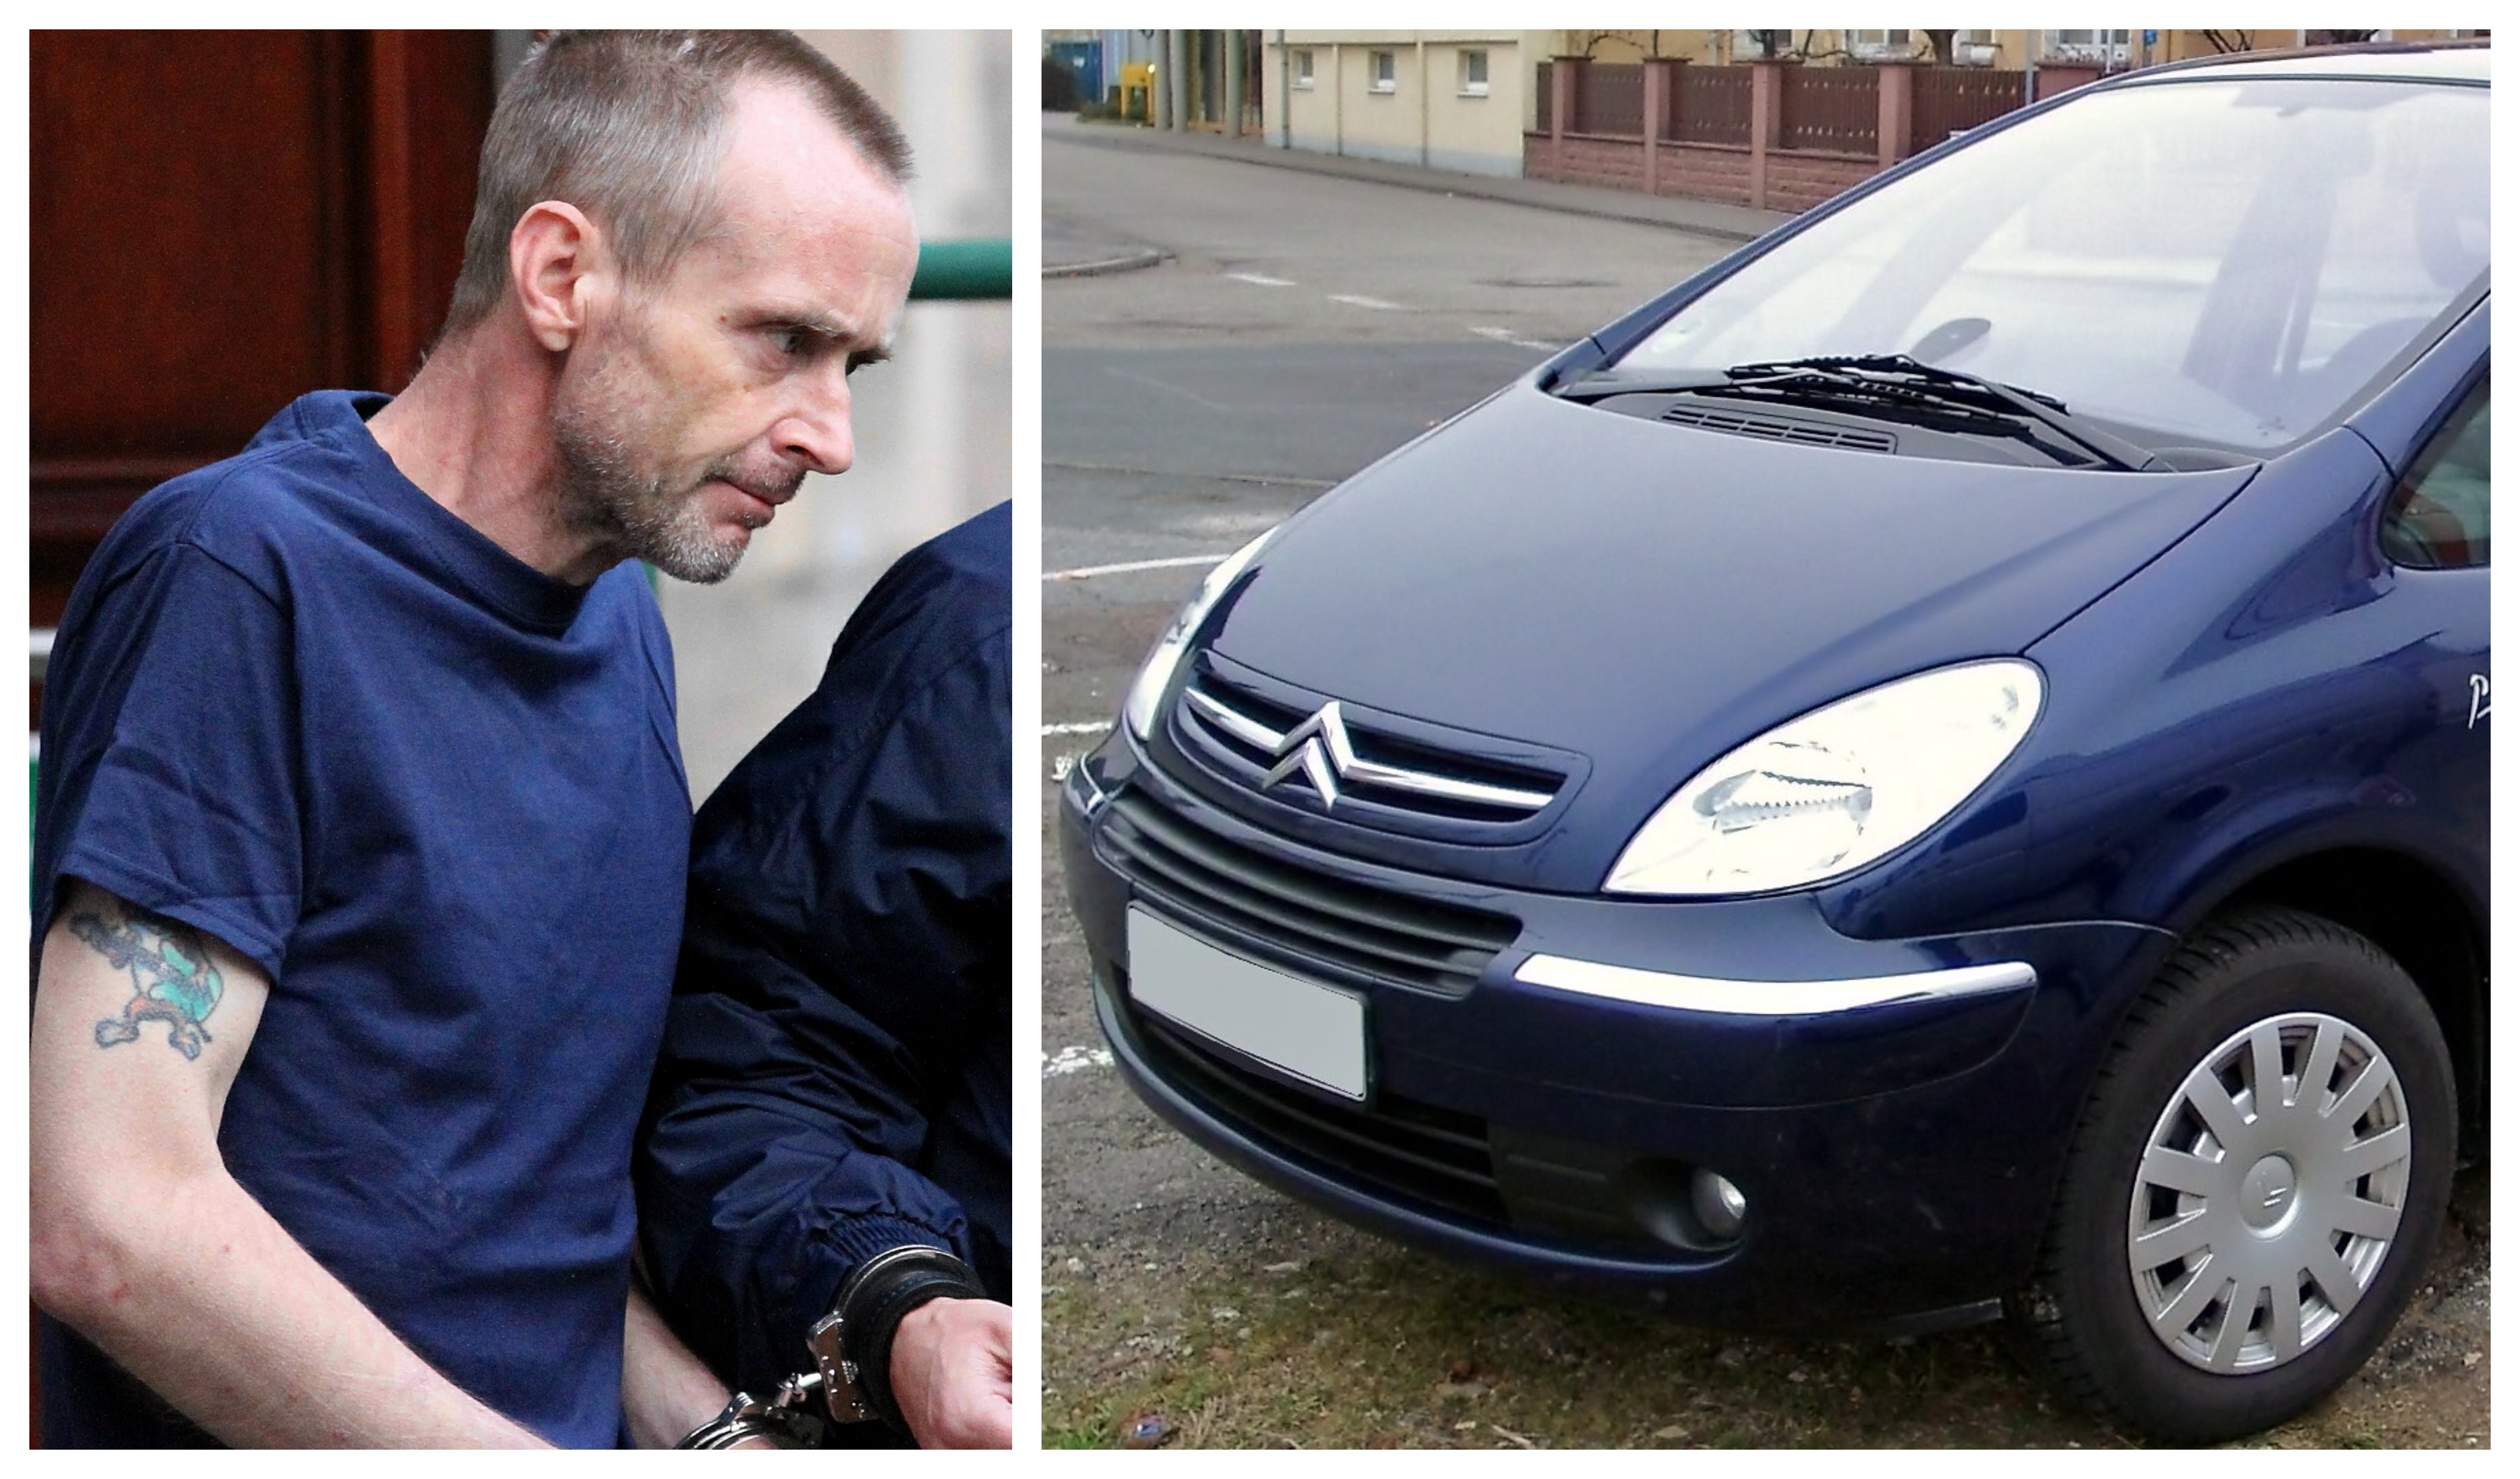 Notorious killer Steven Jackson attacked an escort officer who was driving a Citroen Picasso, similar to the car pictured